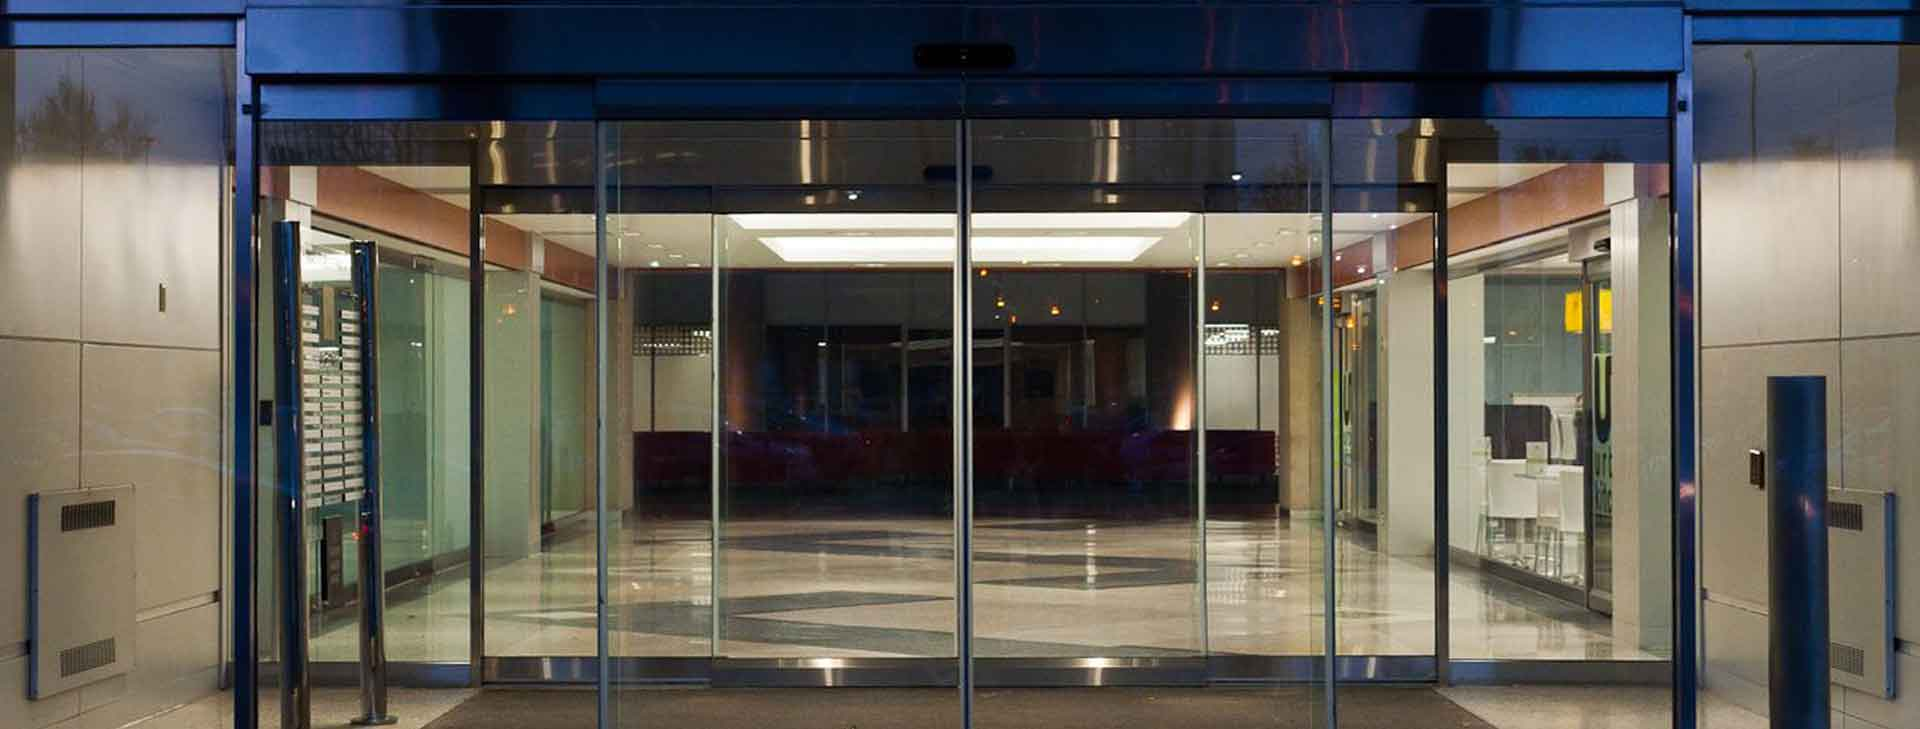 5 advantages of automatic glass doors in commercial spaces for Commercial entry doors